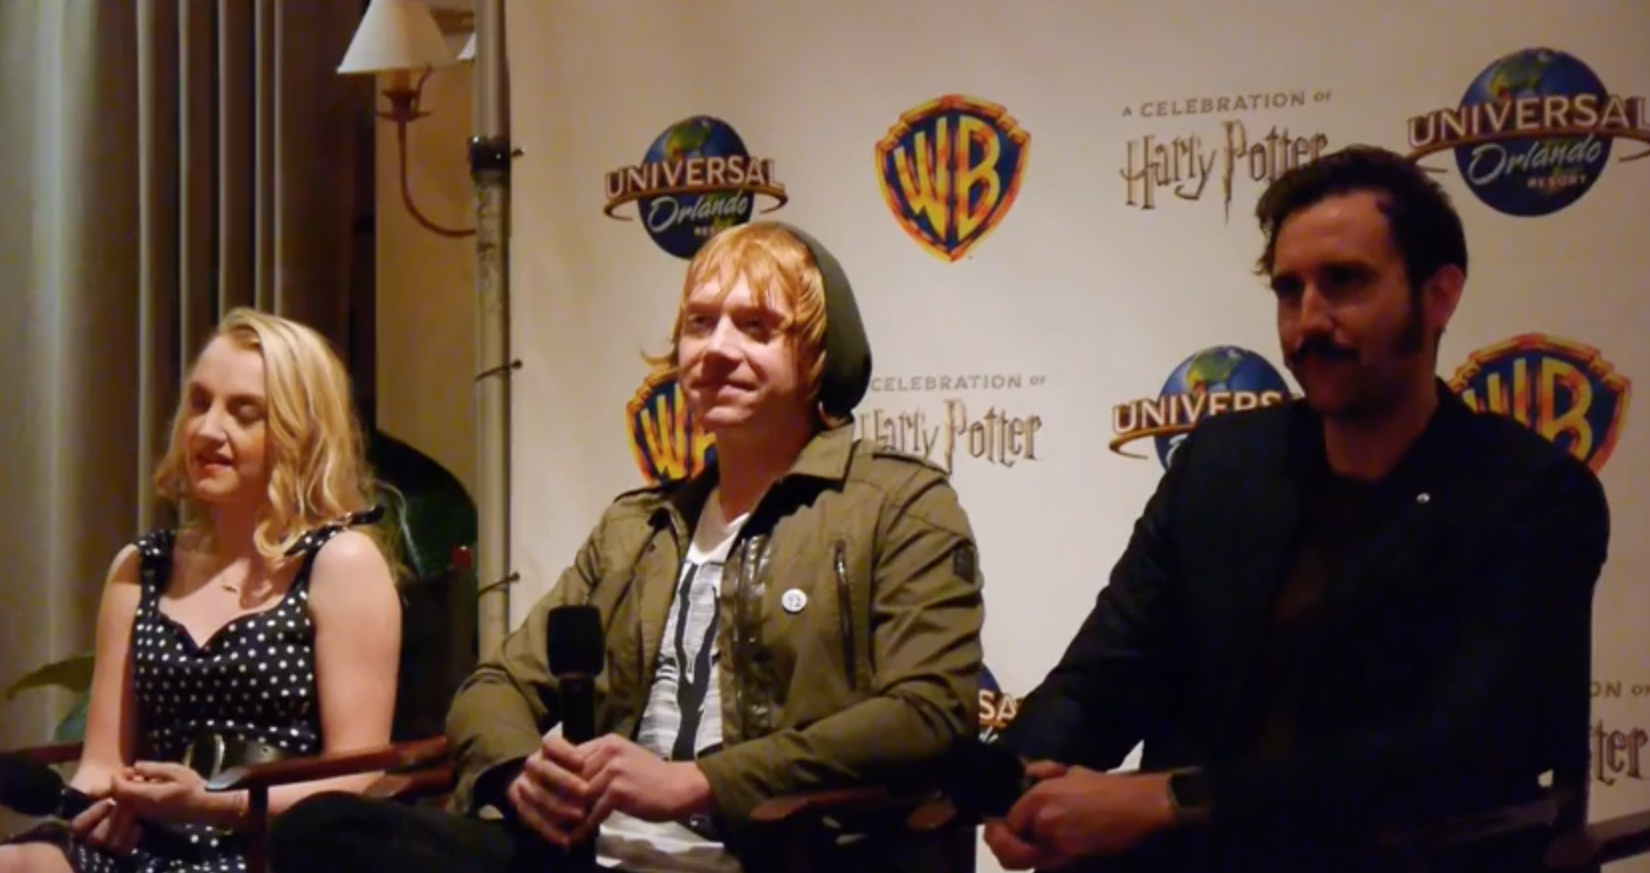 Media Q&A (A Celebration of Harry Potter): Part 2